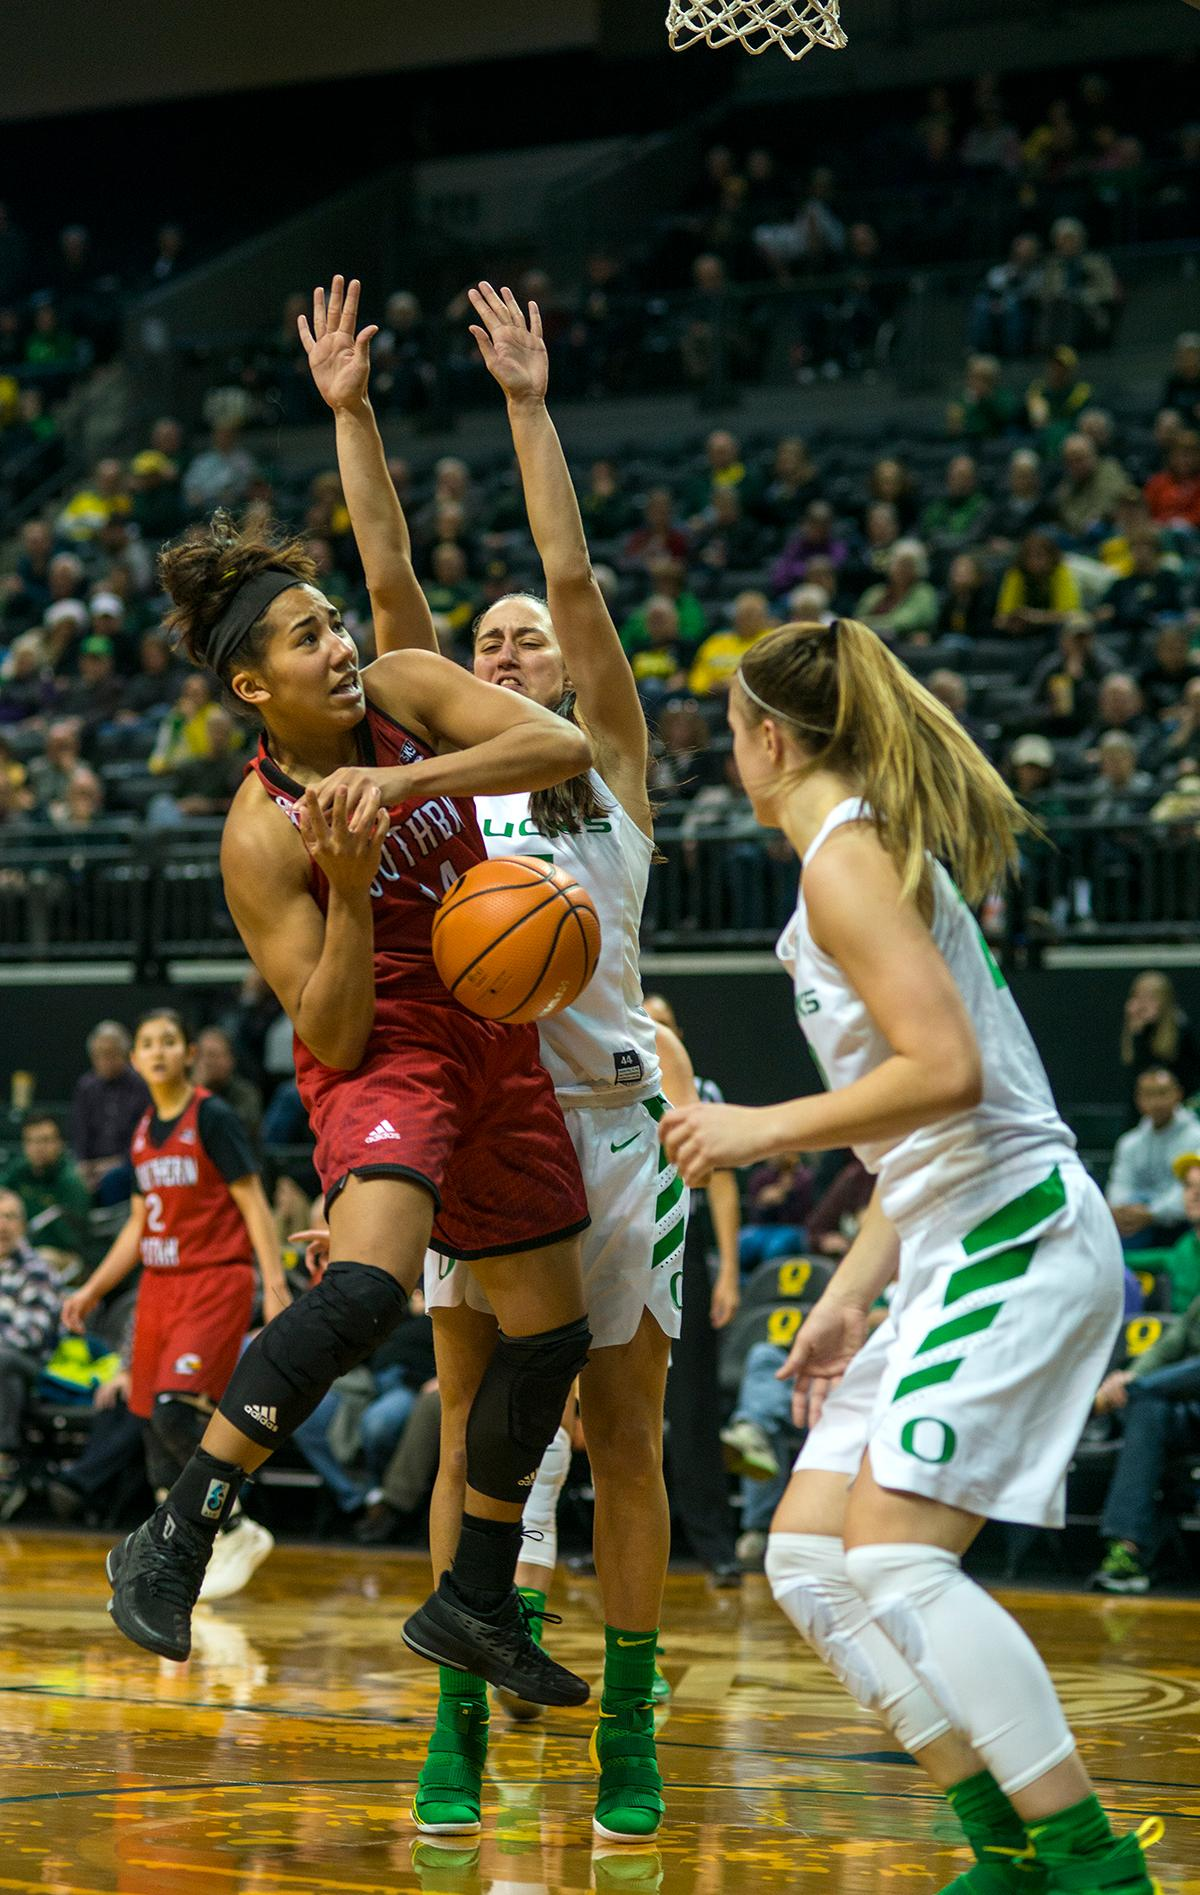 Southern Utah Thunderbirds Breanu Reid (#14) attempts to make it to the basket. The University of Oregon Ducks women basketball team defeated the Southern Utah Thunderbirds 98-38 in Matthew Knight Arena Saturday afternoon. The Ducks had four players in double-digits: Ruthy Hebard with 13; Mallory McGwire with 10; Lexi Bando with 17 which included four three-pointers; and Sabrina Ionescu with 16 points. The Ducks overwhelmed the Thunderbirds, shooting 50% in field goals to South Utah's 26.8%, 53.8% in three-pointers to 12.5%, and 85.7% in free throws to 50%. The Ducks, with an overall record of 8-1, and coming into this game ranked 9th, will play their next home game against Ole Miss on December 17. Photo by Rhianna Gelhart, Oregon News Lab